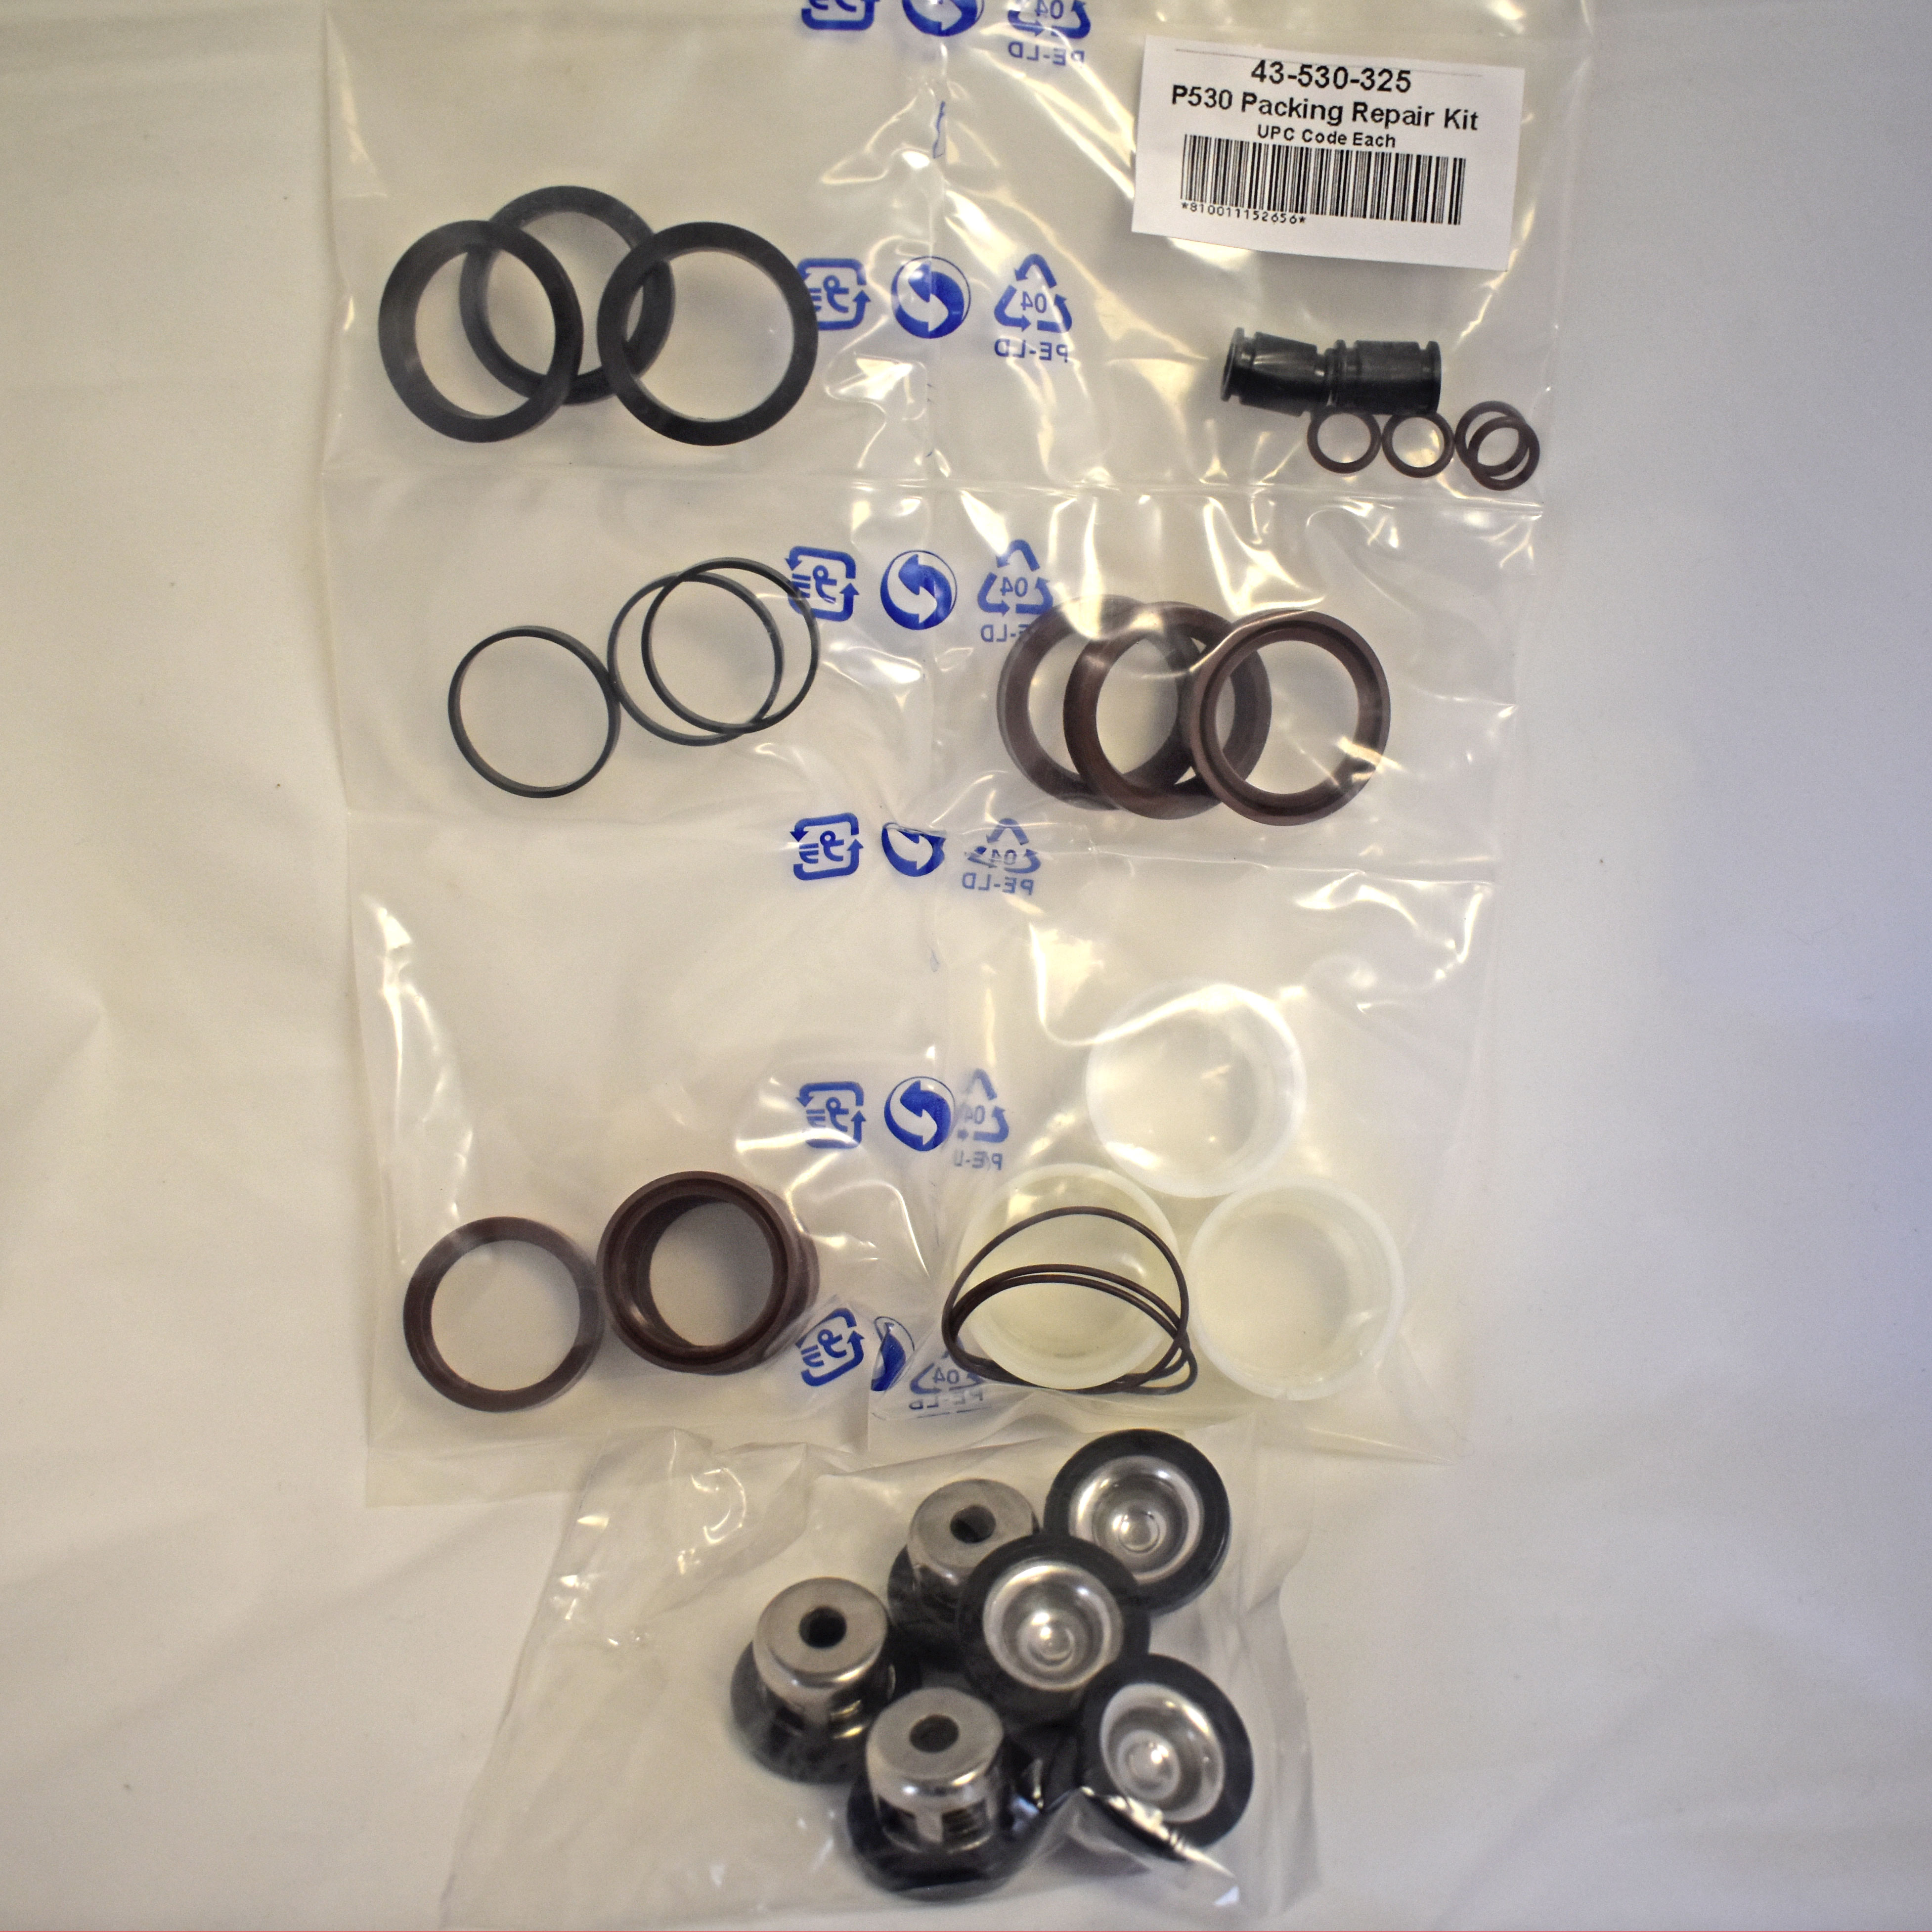 43-530-380 GNC P530 Piston Pump Rebuild Kit - Includes Valve Repair Kit and Packing Kit